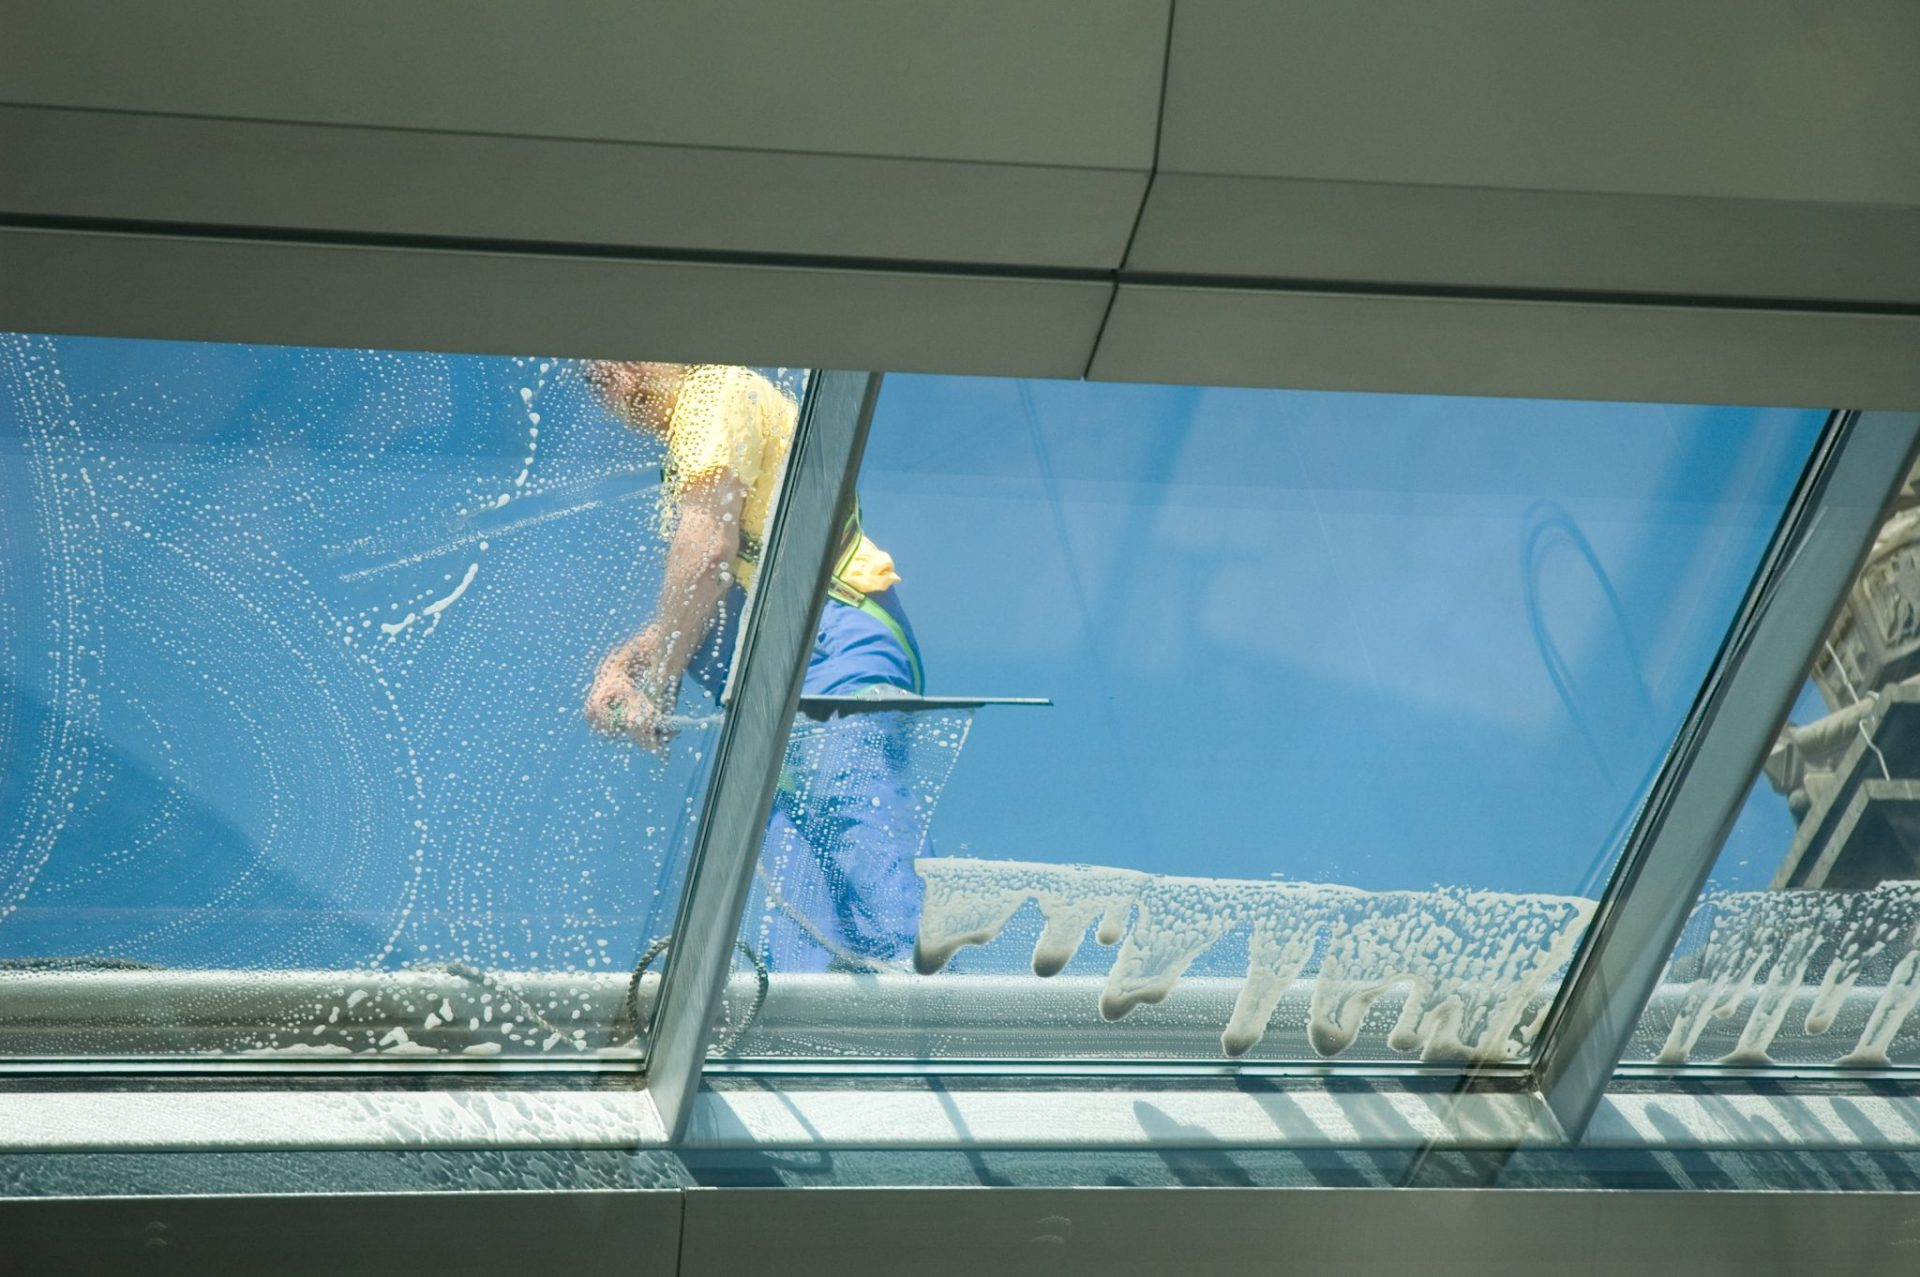 LBCD window cleaning